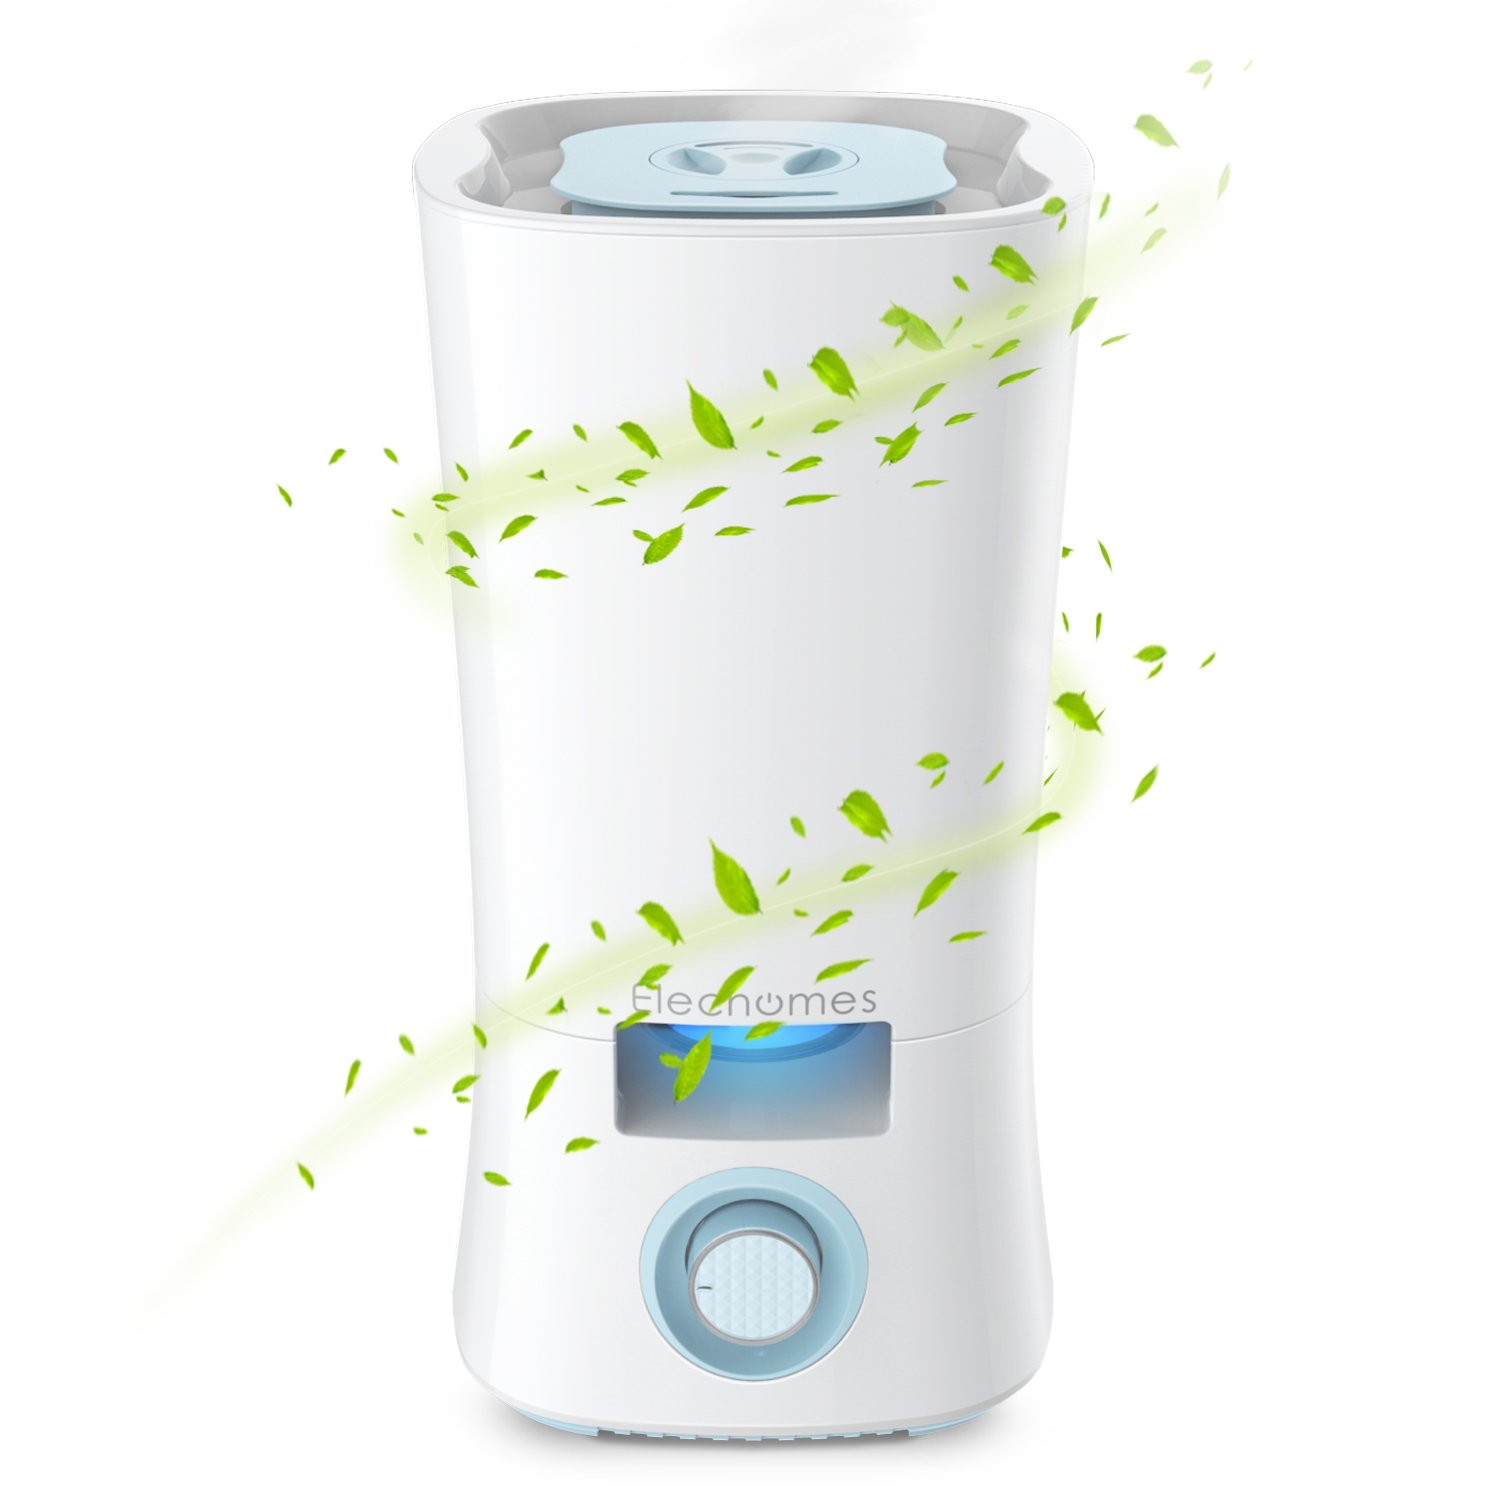 Elechomes Cool Mist Humidifier, 3.5L Ultrasonic Humidifiers for Bedroom Baby Room with Stepless Mist Adjustment, 360 Degree Rotatable Dual Nozzles, Whisper Quiet Operation and Auto Shut-off, CH352